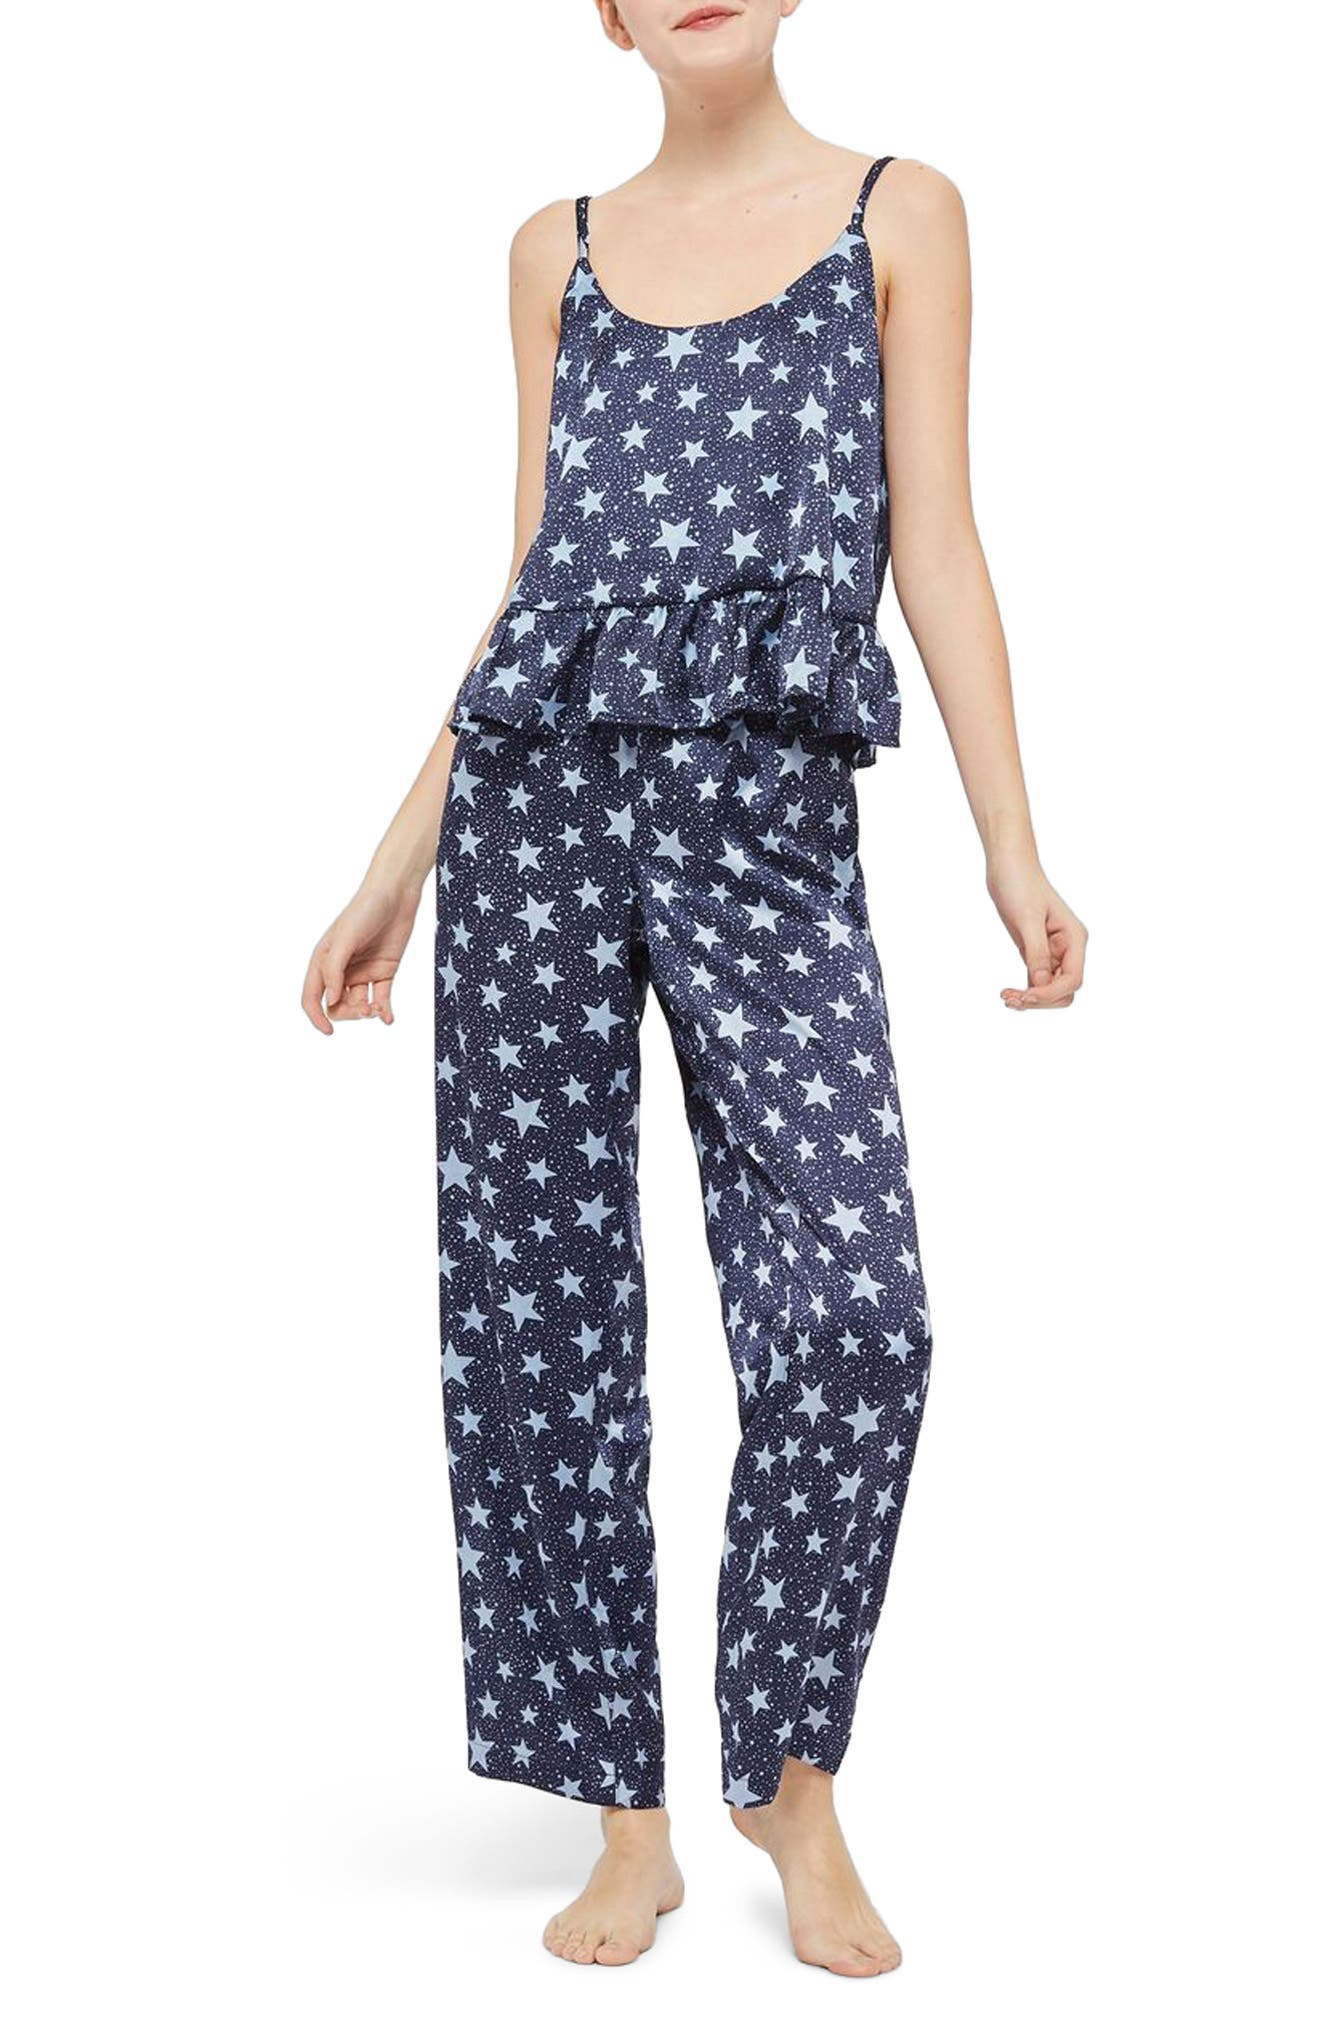 Star Satin Pajamas,                             Main thumbnail 1, color,                             Navy Blue Multi